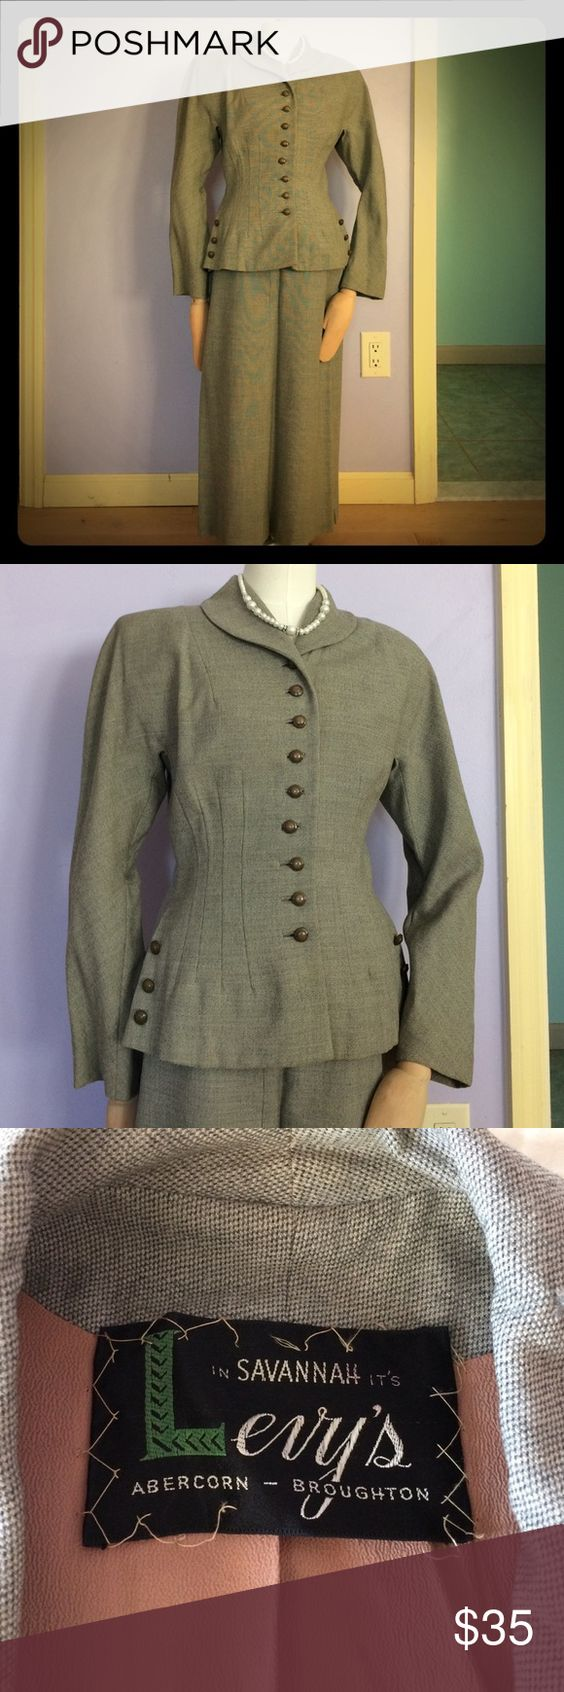 Vintage women's suit This is a beautifully made vintage (circa 1940s) wool blend suit. Color is a soft gray. Jacket is designed with figure flattering details and lined with tan chiffon material. The skirt is A line. Other